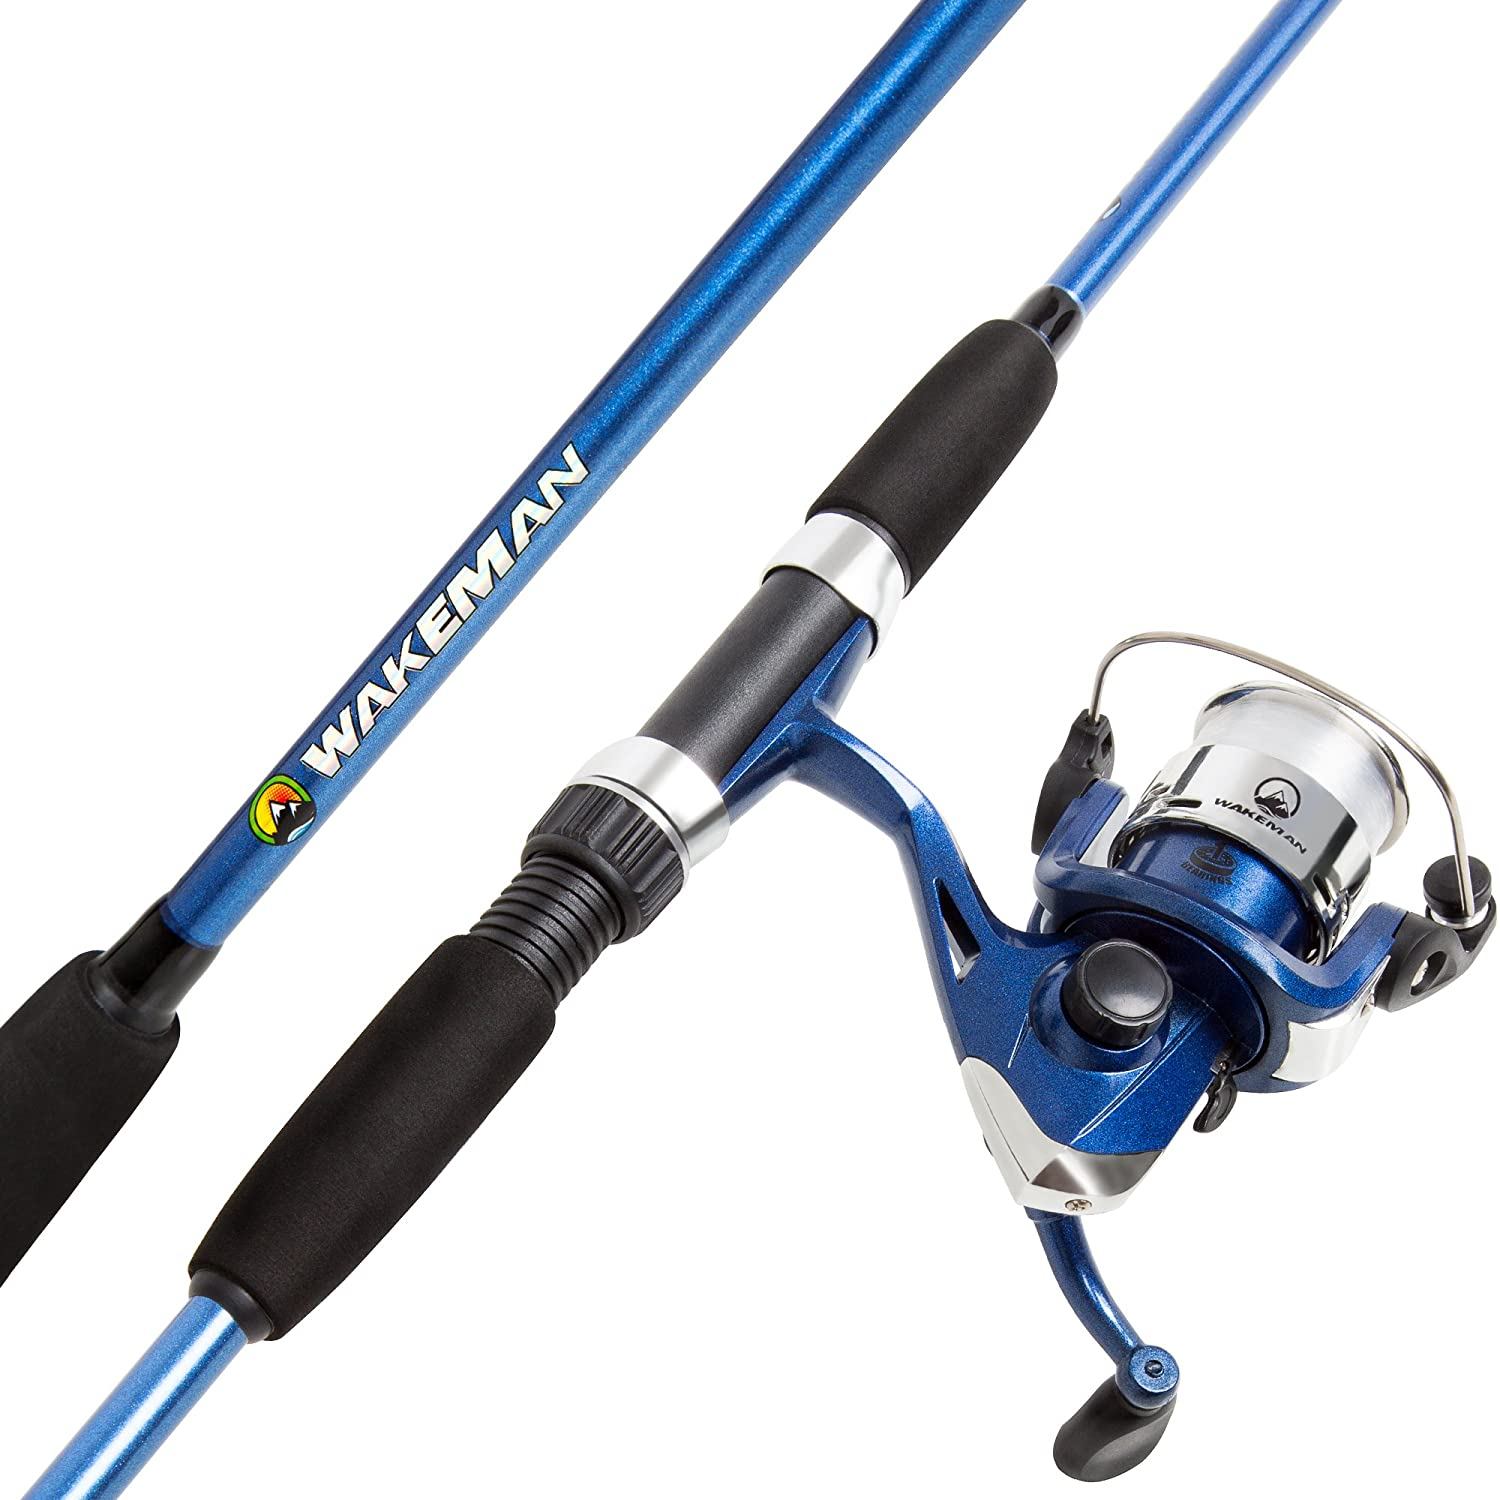 Wakeman Swarm Series Year-end gift Spinning Rod and Reel Max 69% OFF Combo